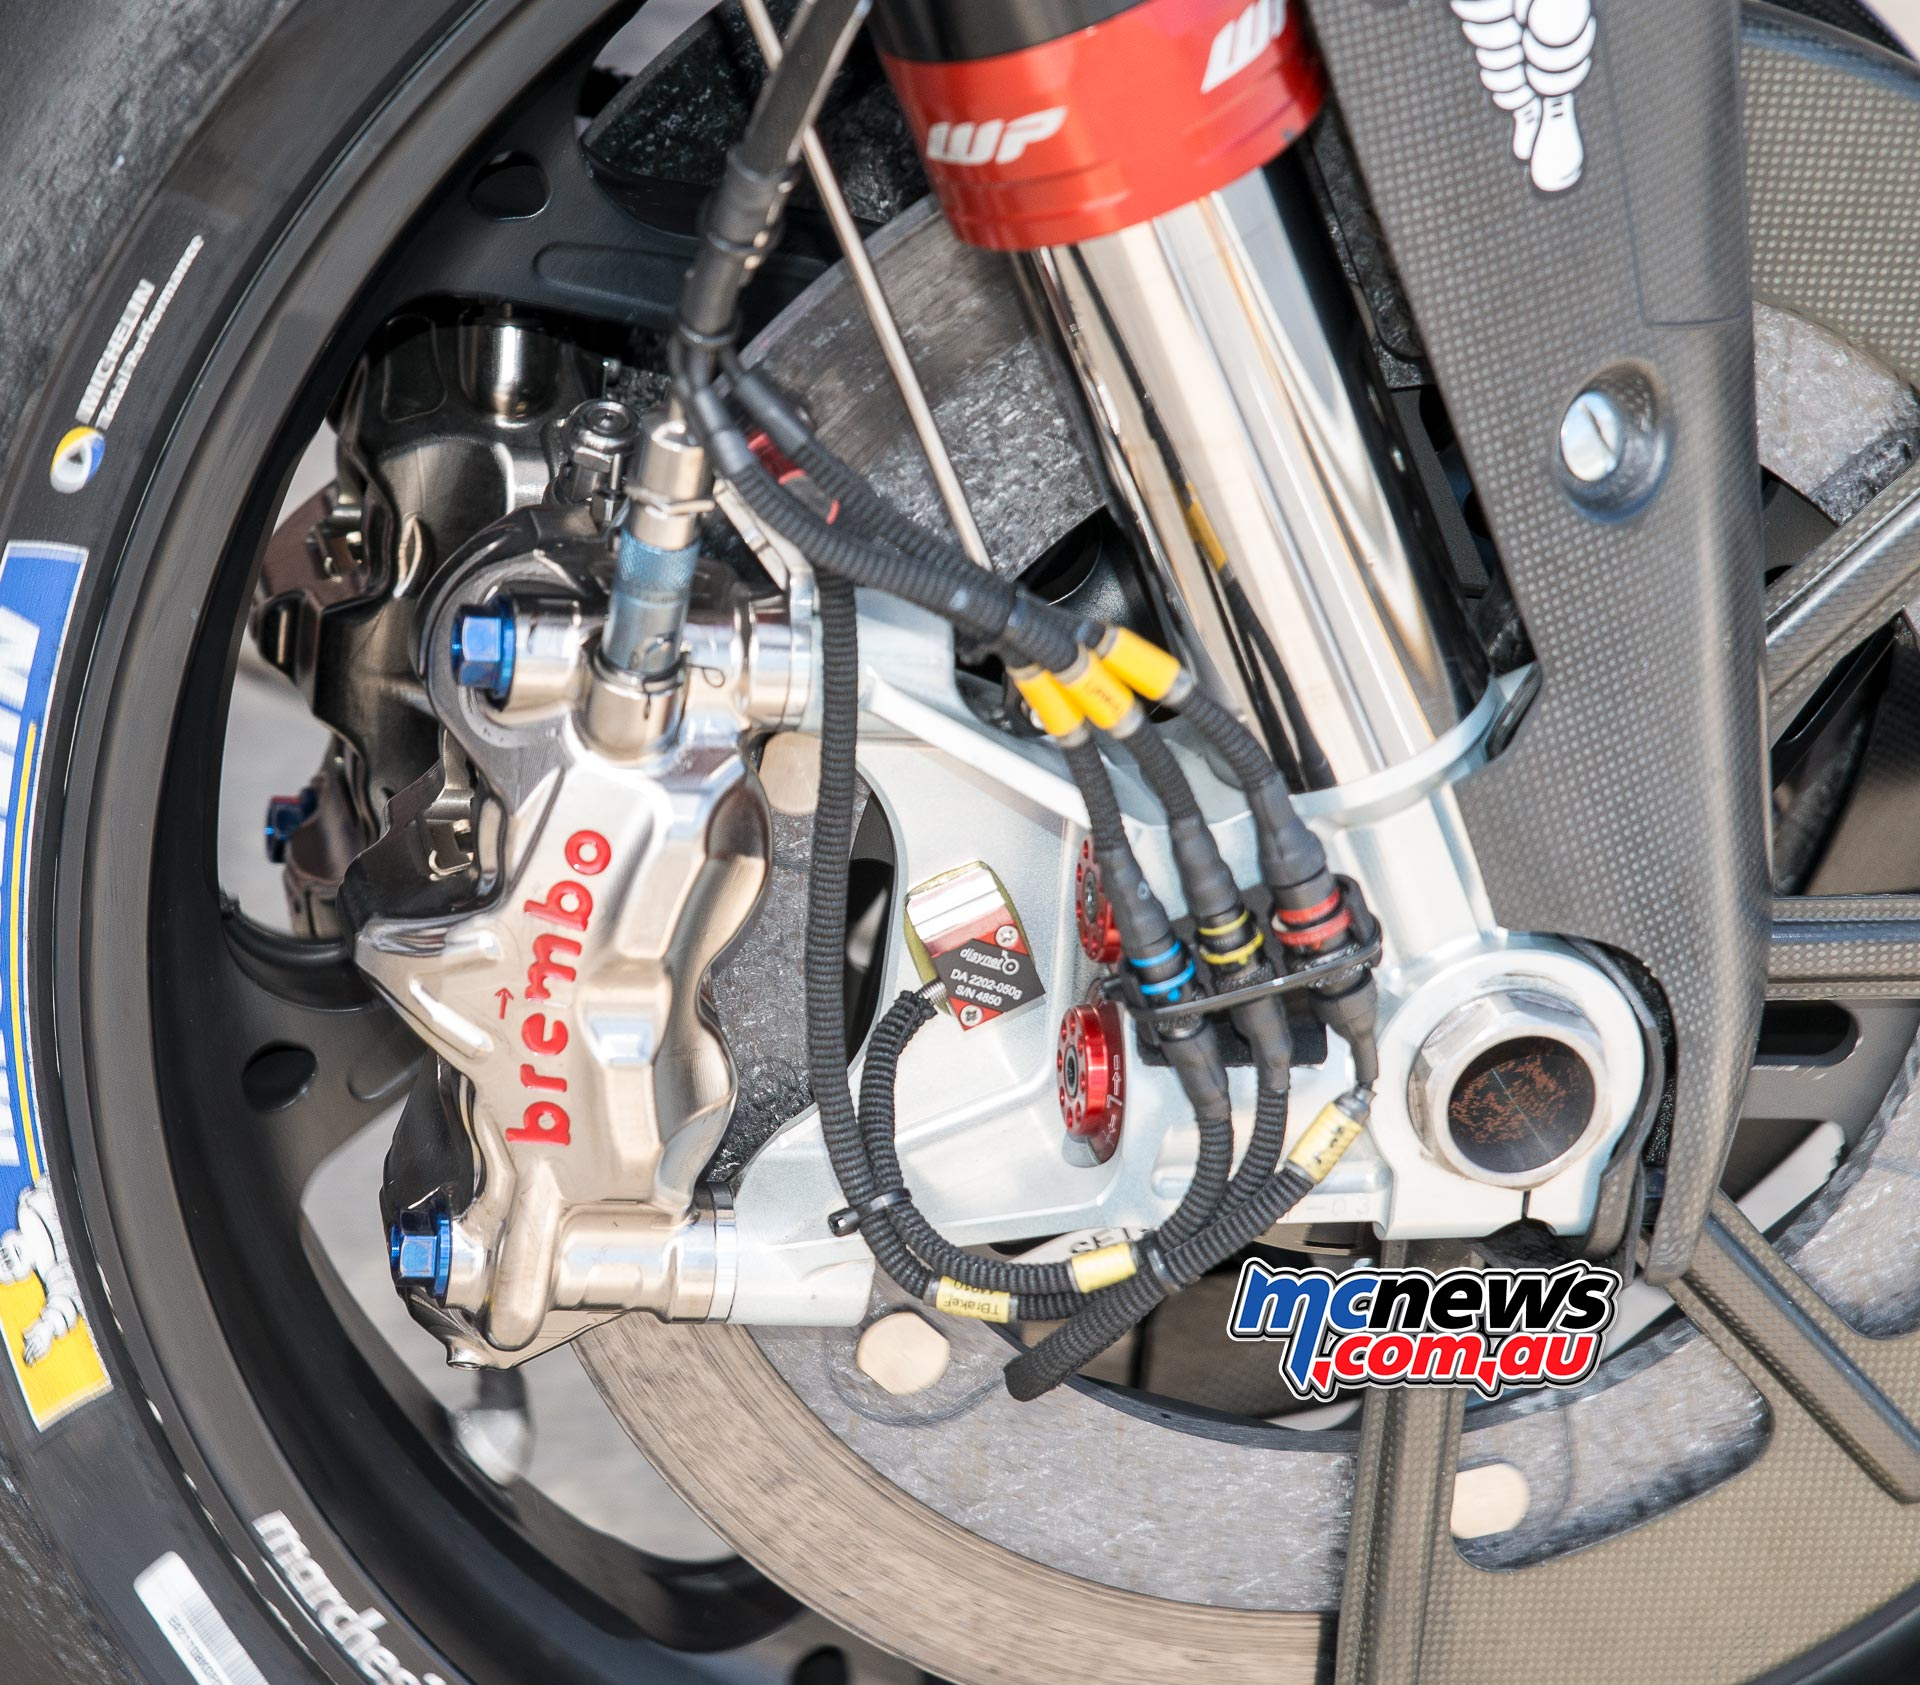 Brembo And Radial Brake Development Part 2 Motorcycle News Sport And Reviews